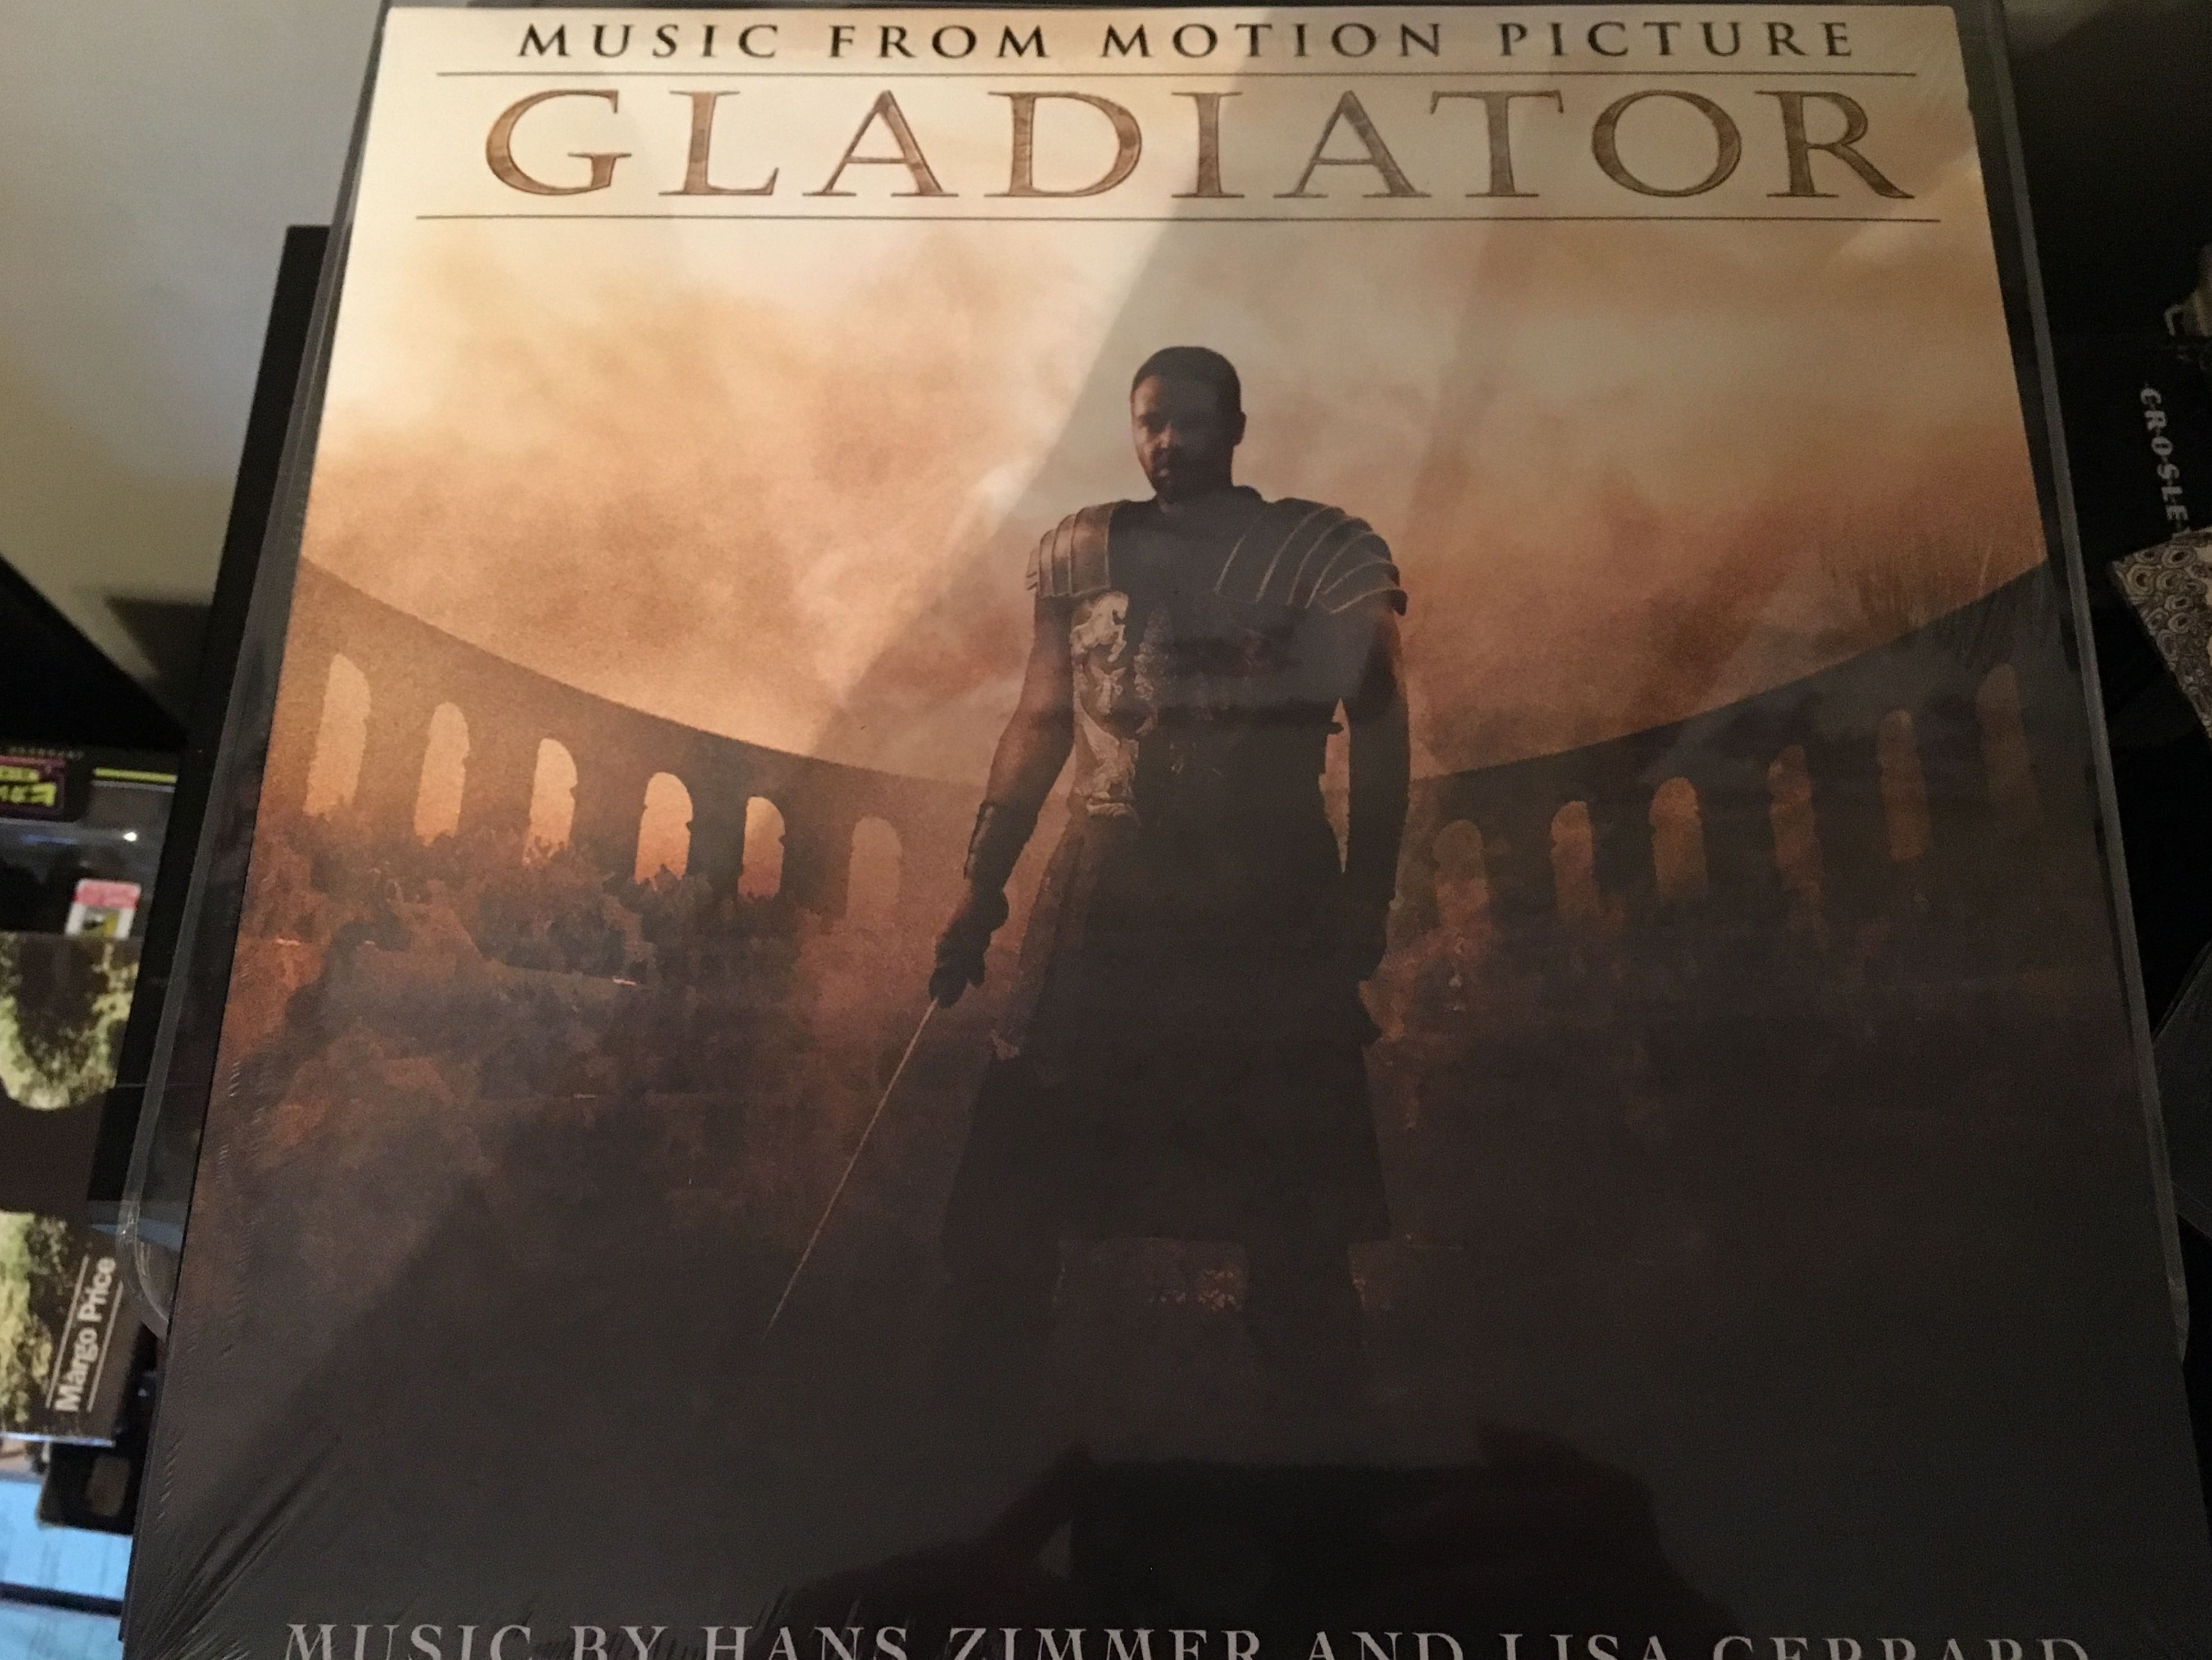 Gladiator Soundtrack Vinyl Record Collection Motion Picture Vinyl Records